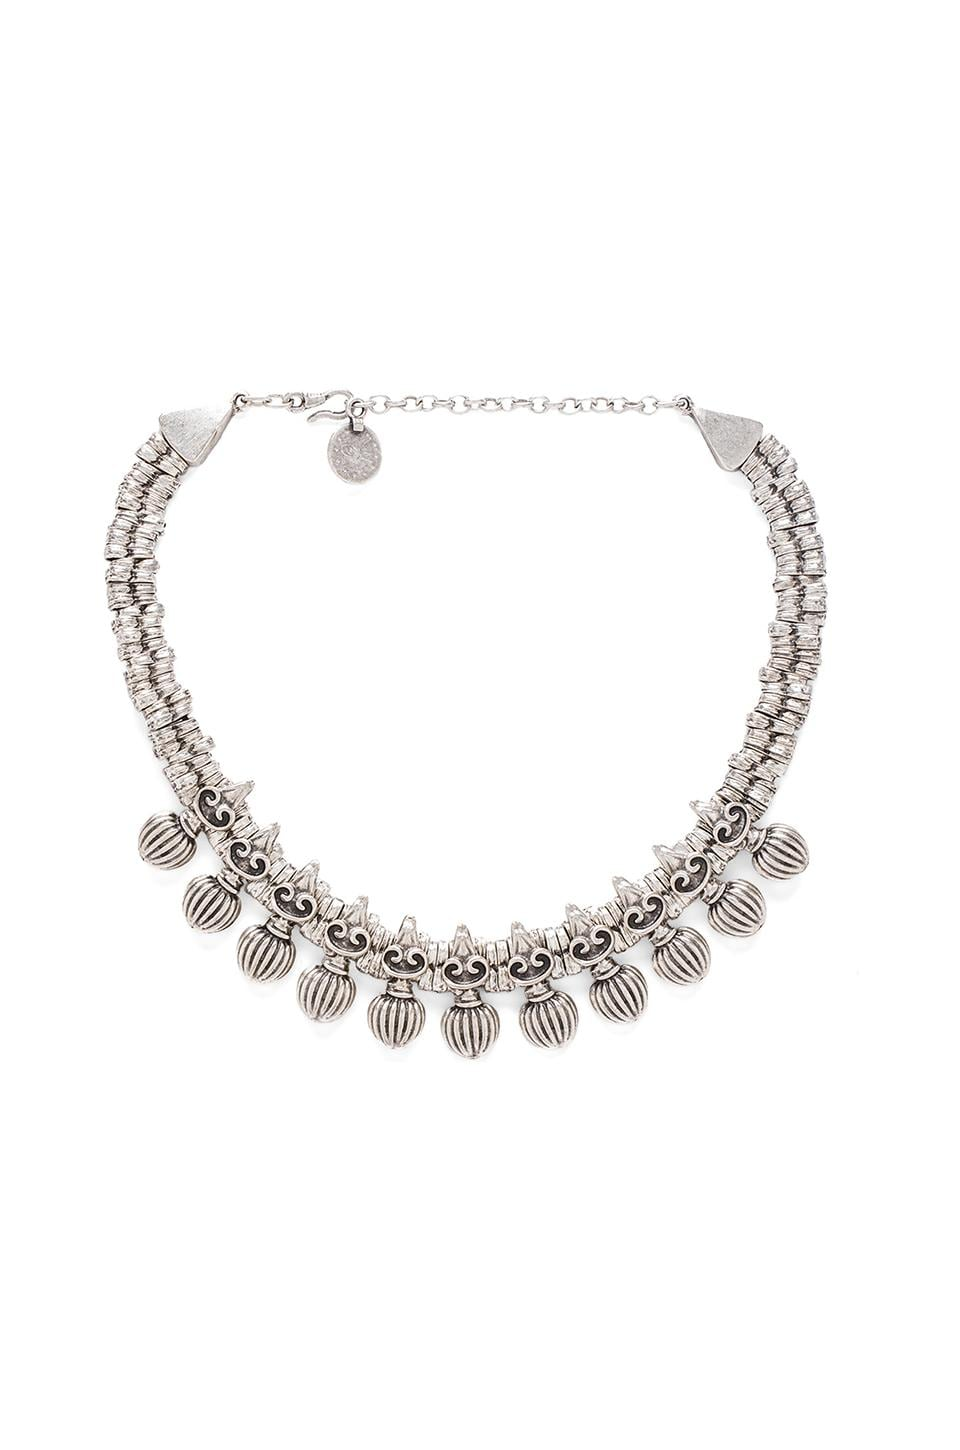 Natalie B Jewelry Triton Necklace in Silver